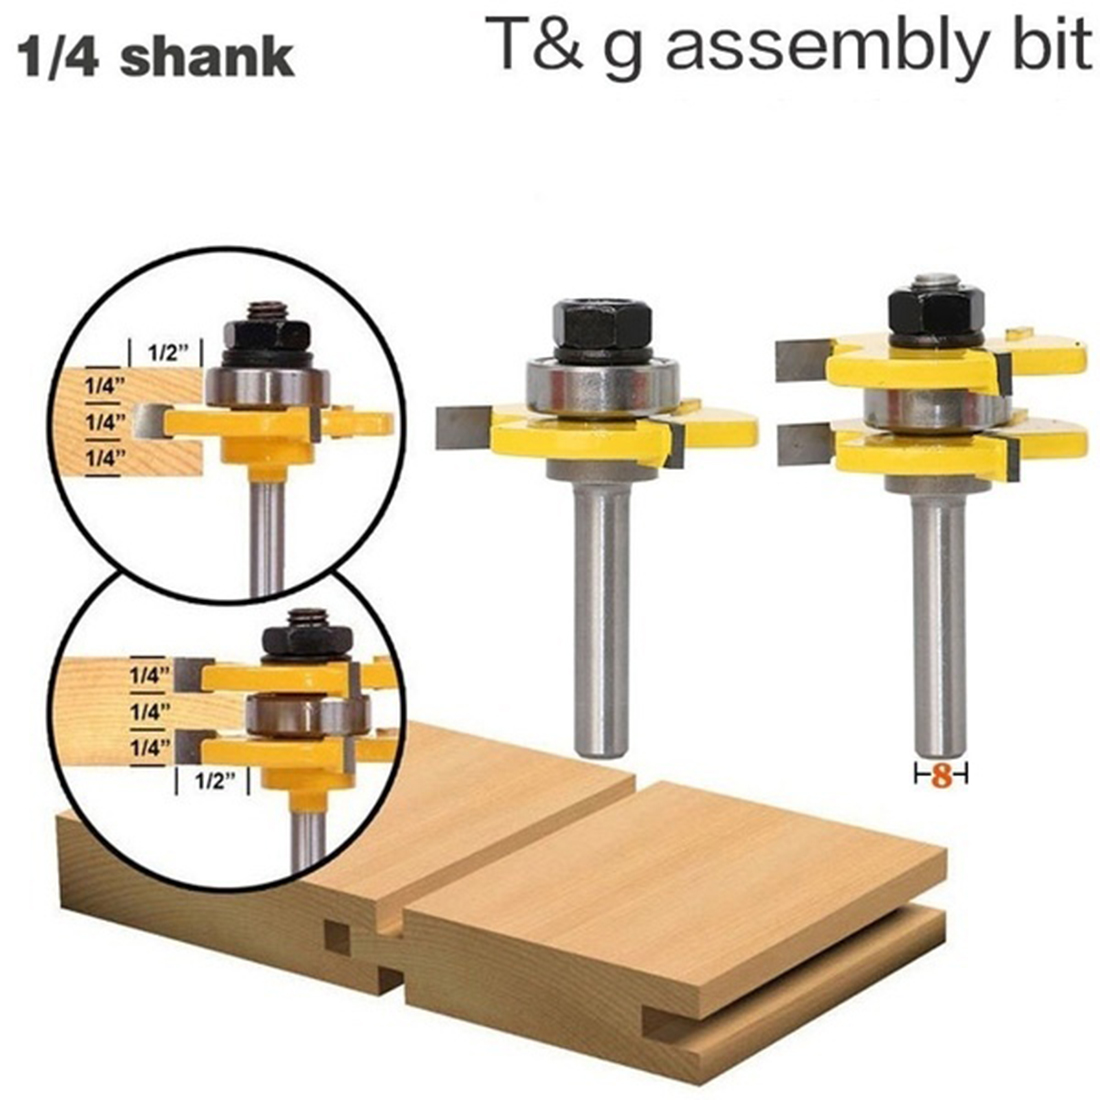 2Pcs 1/4 3/4 Inch T-Shaped Carbide Shank Wood Milling Cutter Tongue and Groove Router Bit Set Mill Woodworking Trimming Tools2Pcs 1/4 3/4 Inch T-Shaped Carbide Shank Wood Milling Cutter Tongue and Groove Router Bit Set Mill Woodworking Trimming Tools